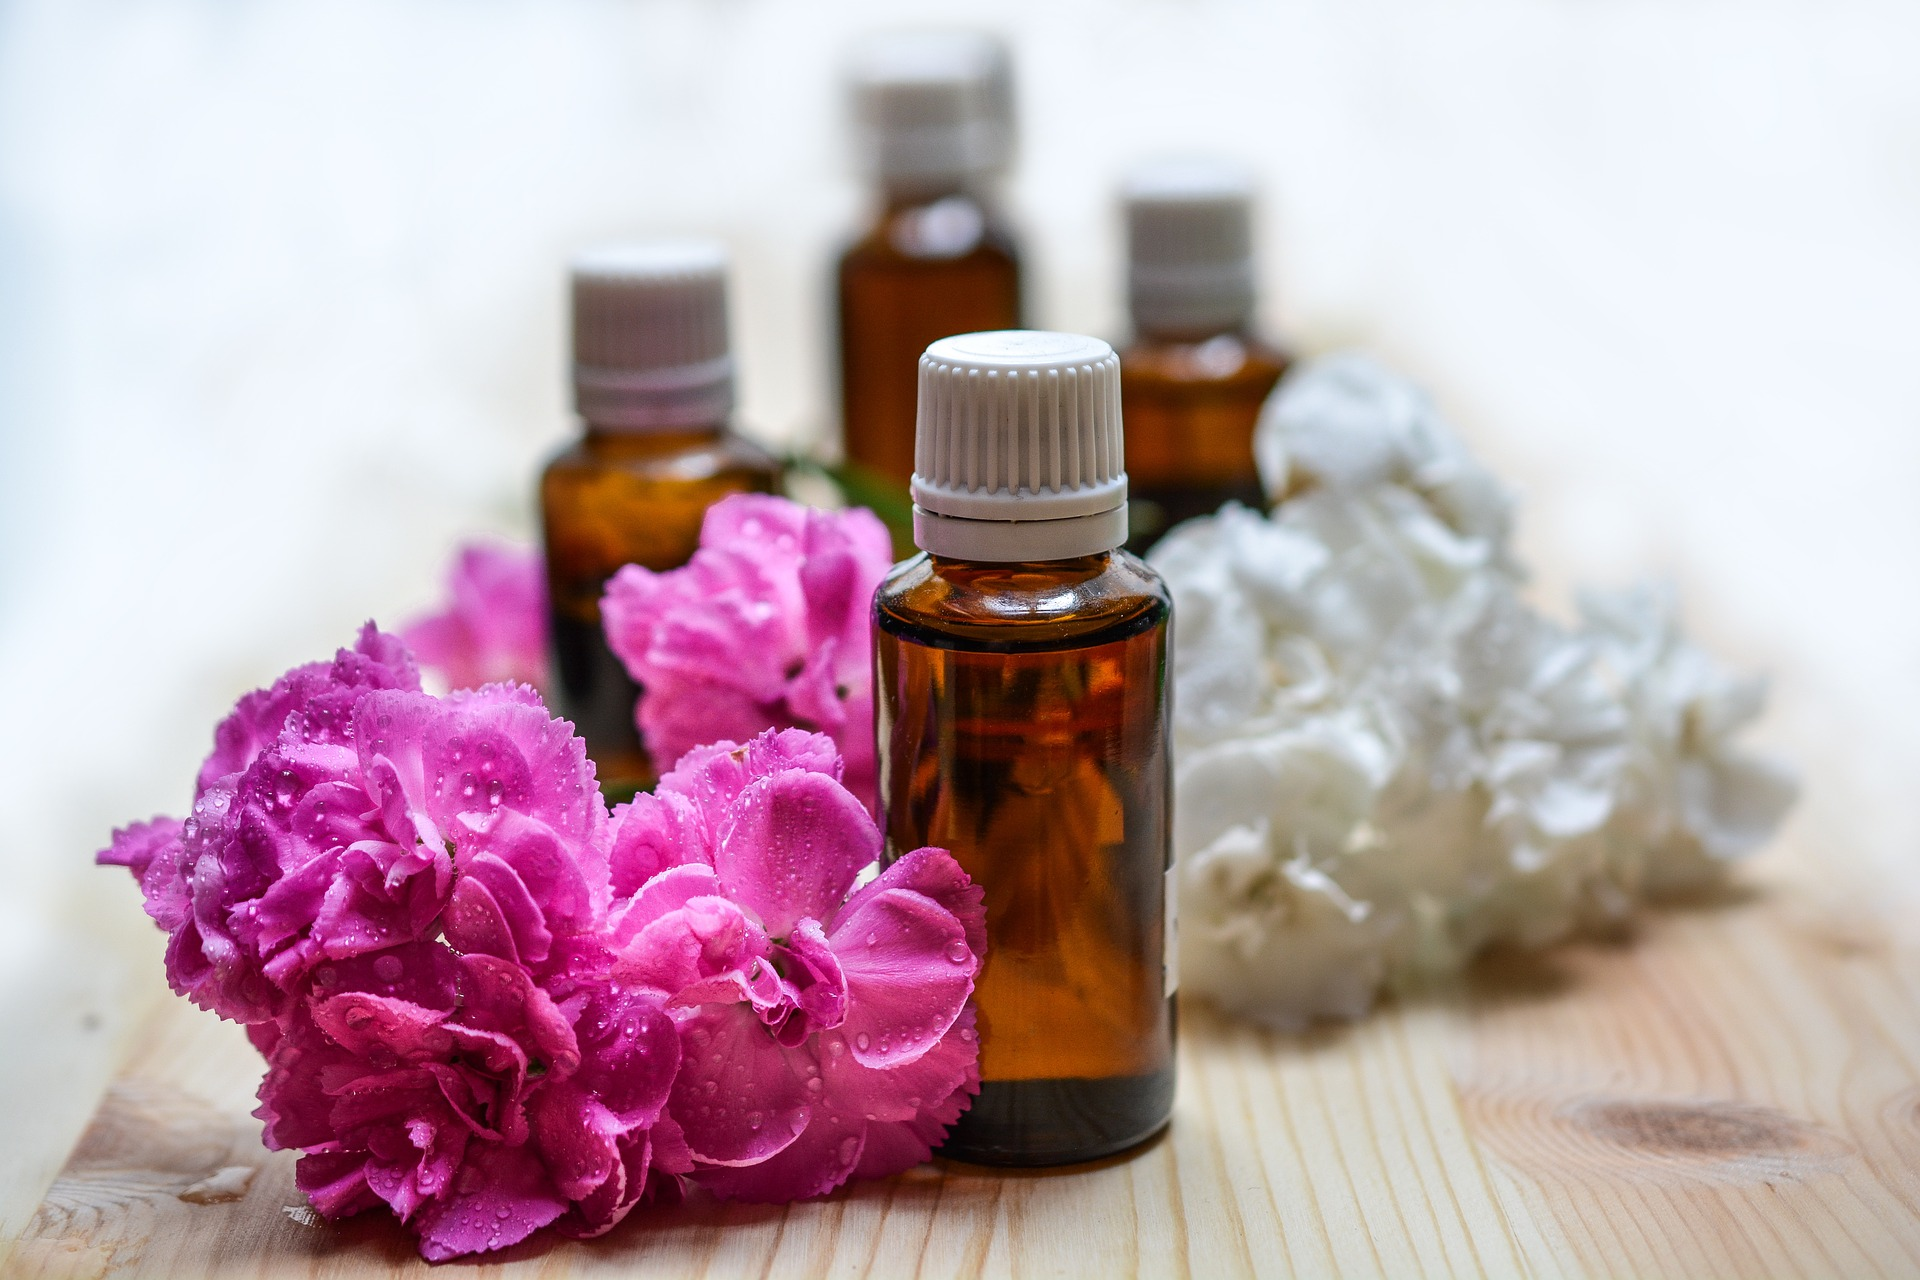 Multi Level Marketing And Aromatherapy Good Or Bad For You